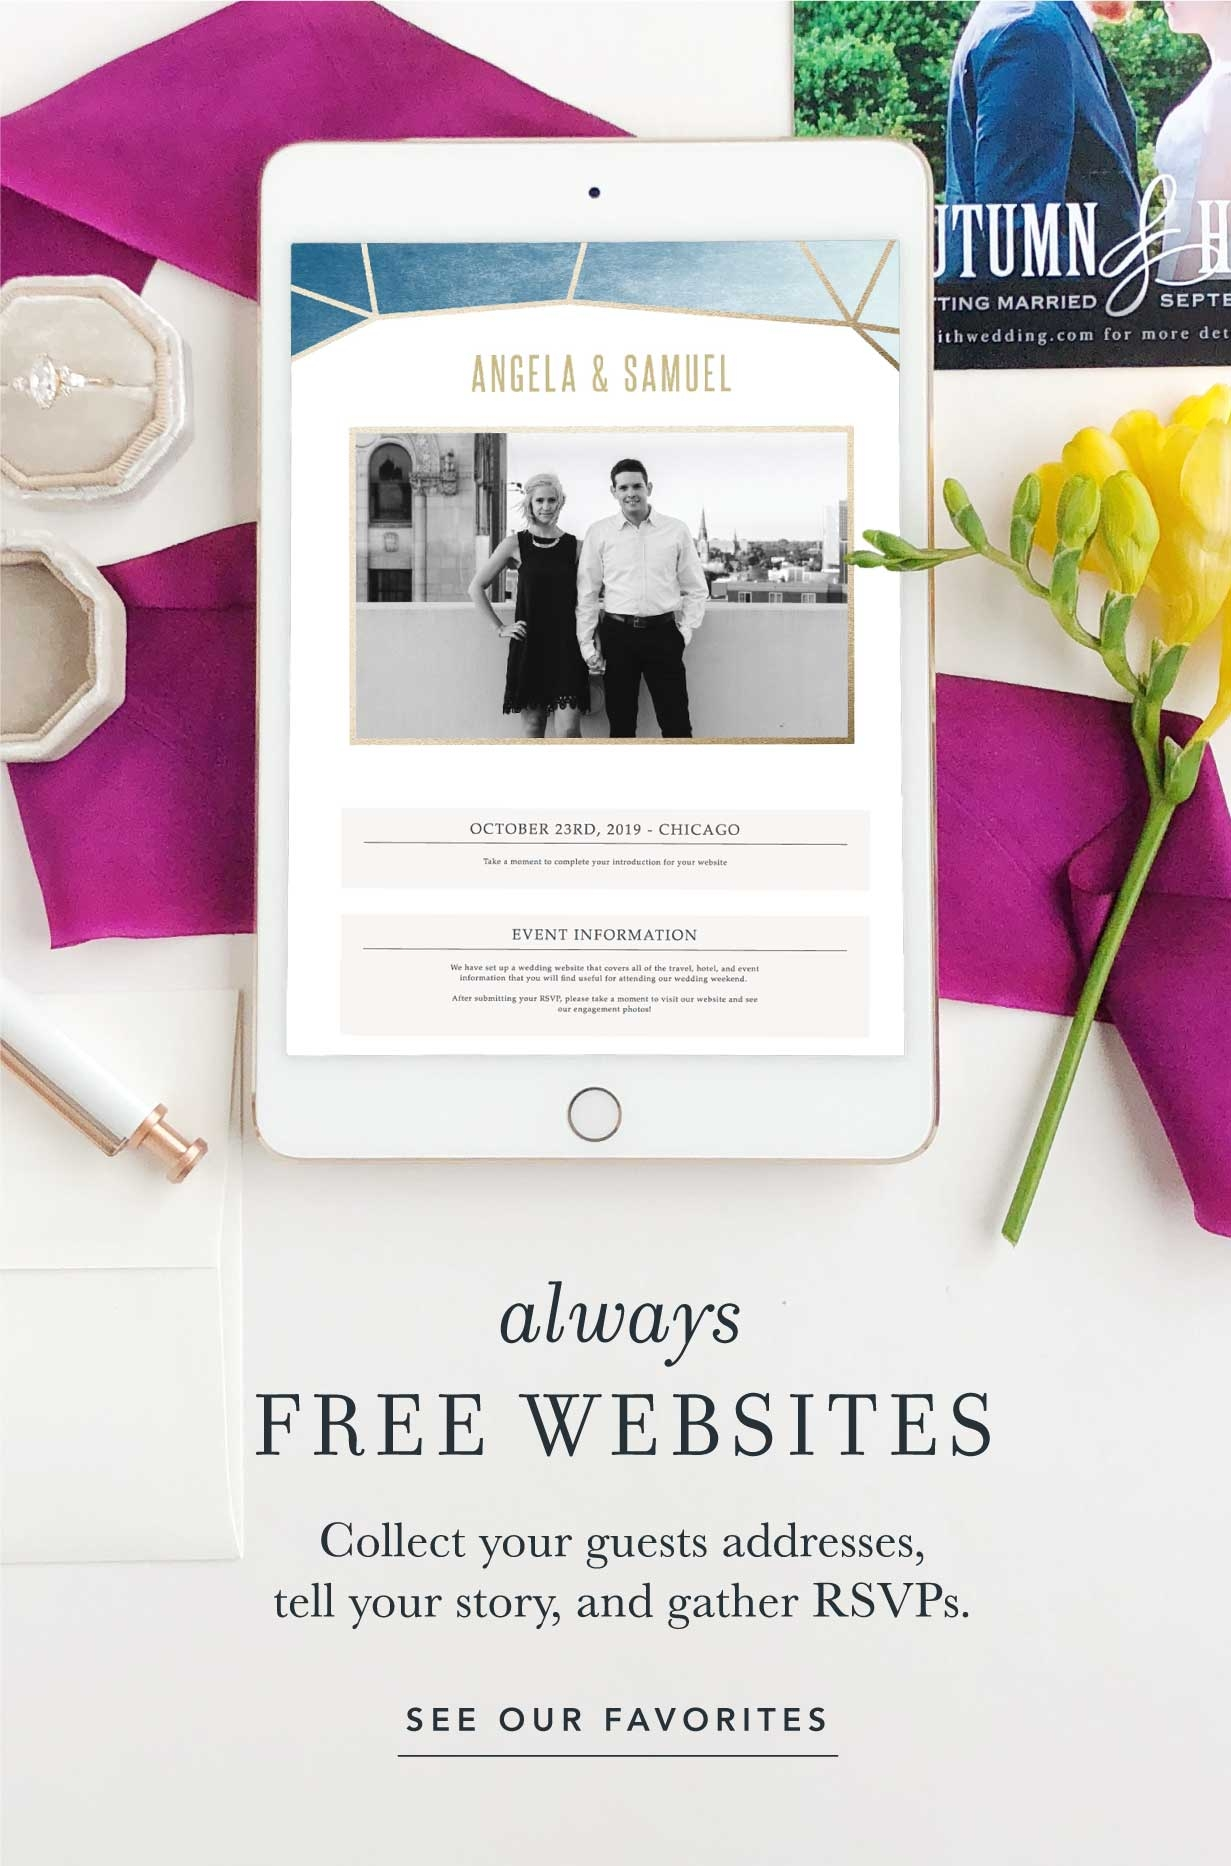 Always Free Websites. Collect your guests addresses, tell your story, and gather RSVPs. See our favorites.